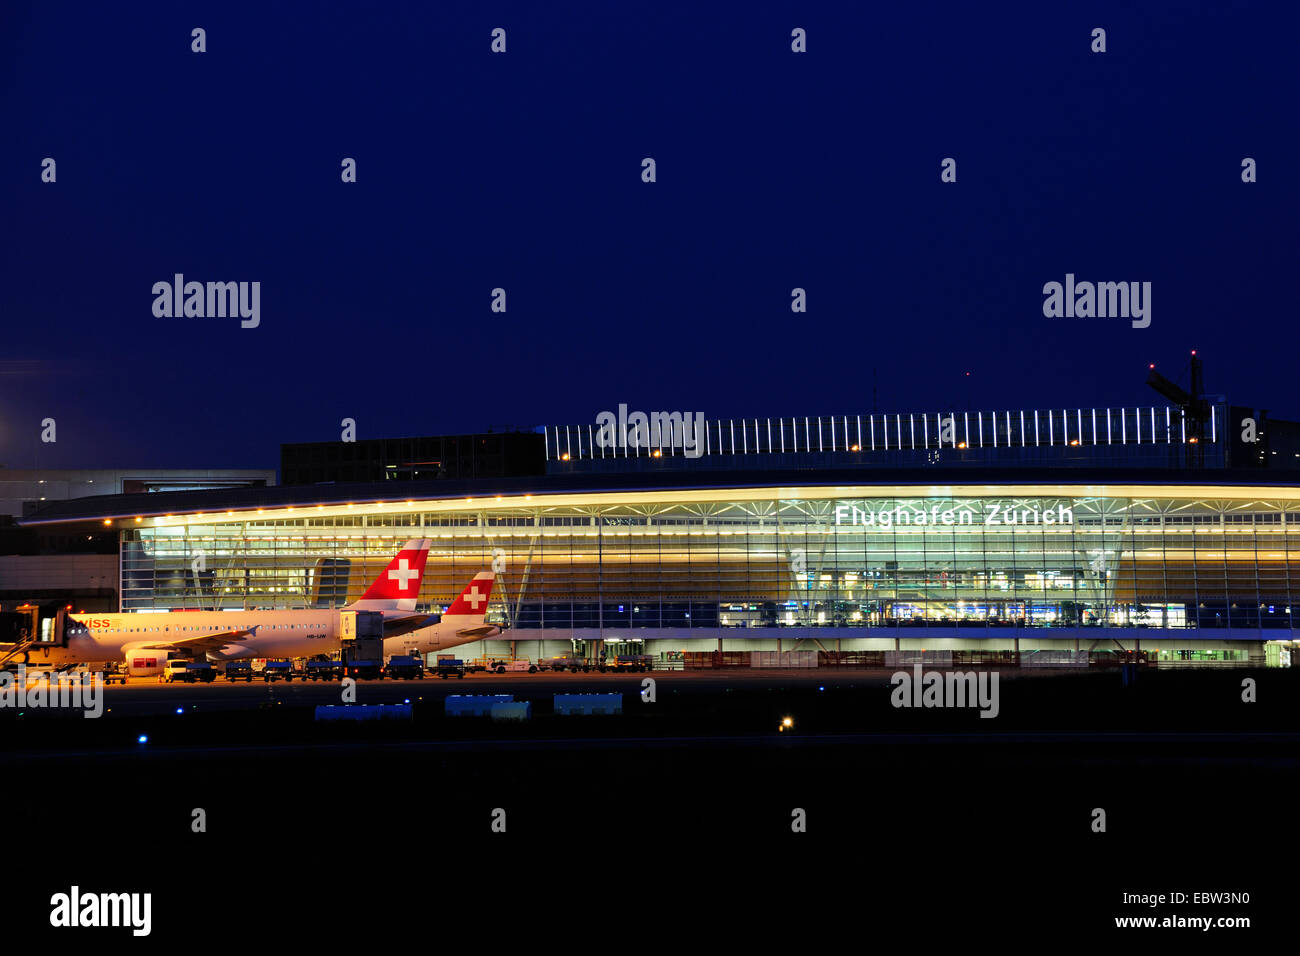 Zurich airport at night, Switzerland, Zurich - Stock Image